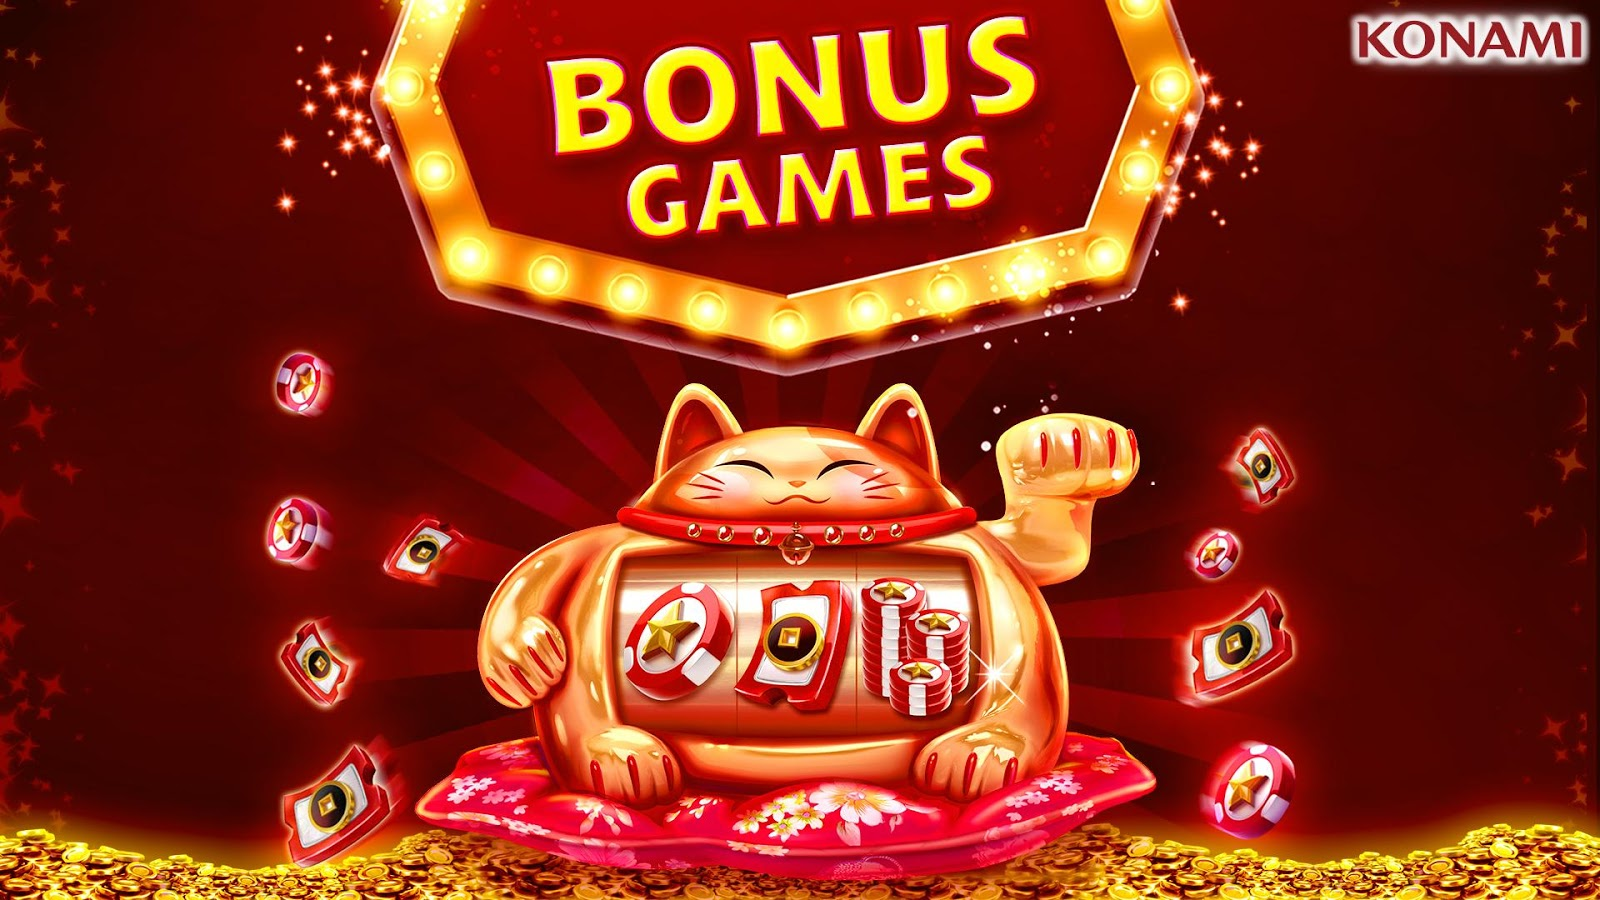 Casino games | Euro Palace Casino Blog - Part 69